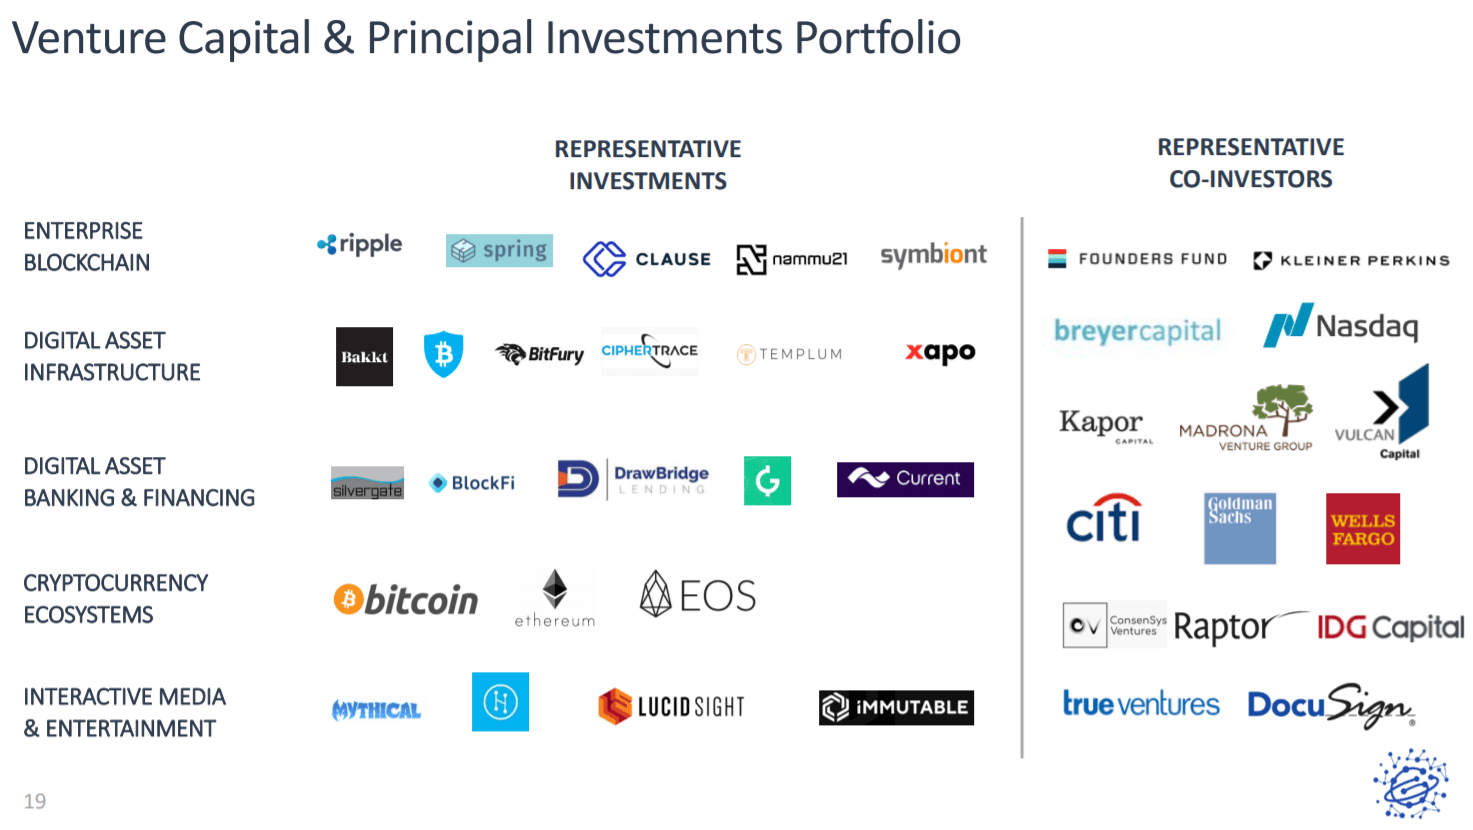 Representative investments of Galaxy Digital Holding (Source: Company report)